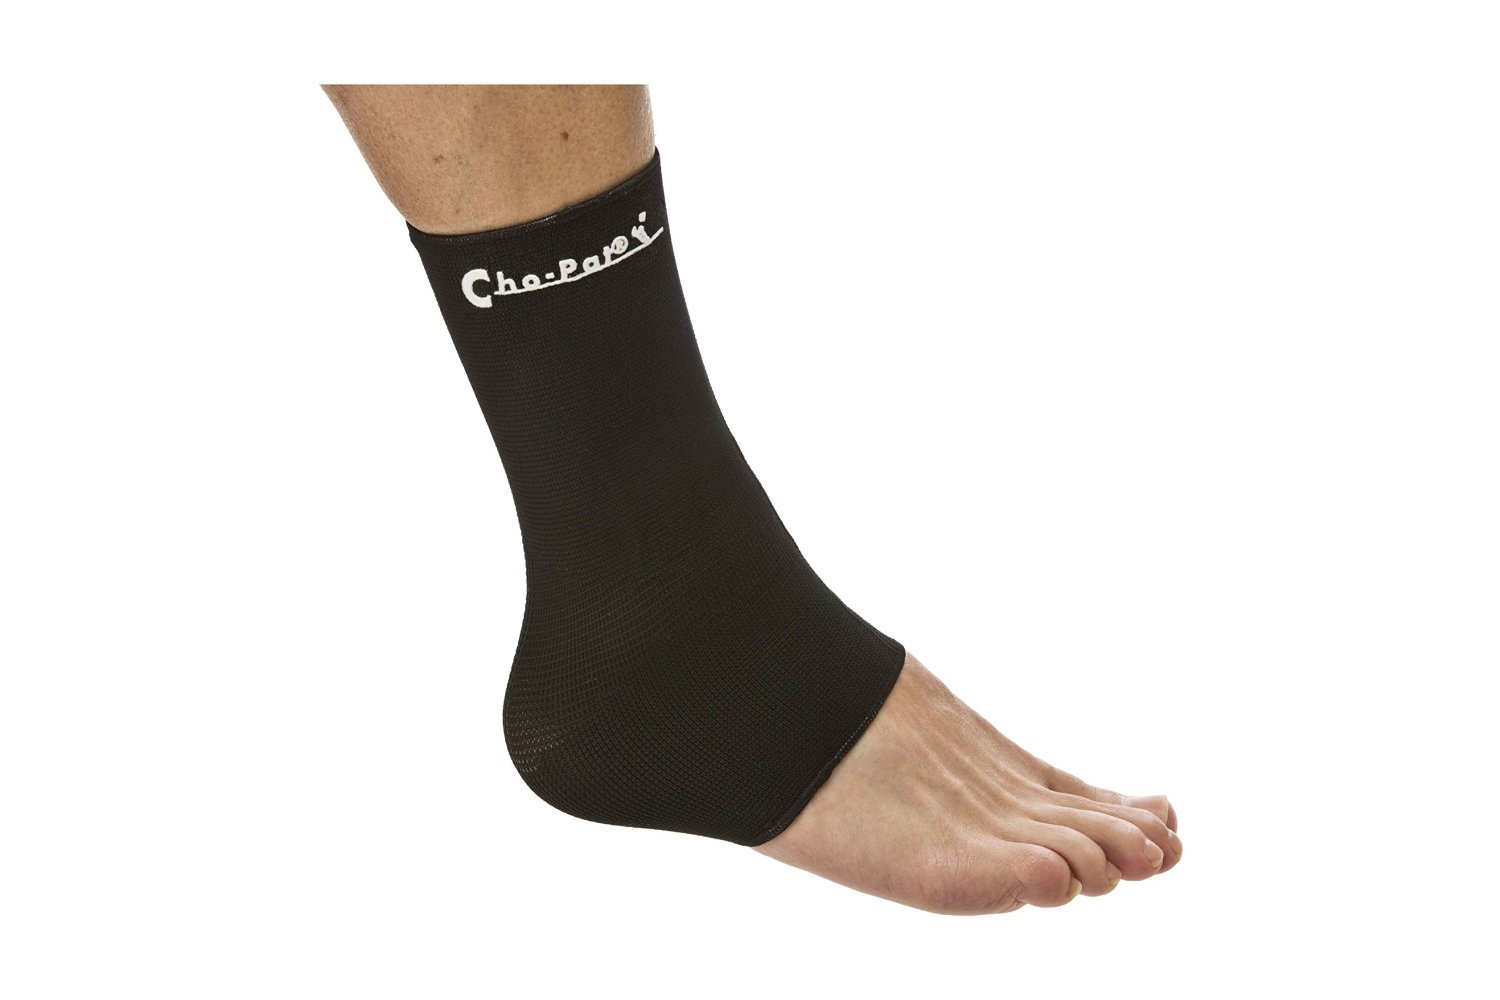 Cho-Pat Ankle Compression Sleeve - Supports & Protects Ankle Pain & Discomfort - Recommended by Medical Professionals (Large, 10.75''-11.75'')